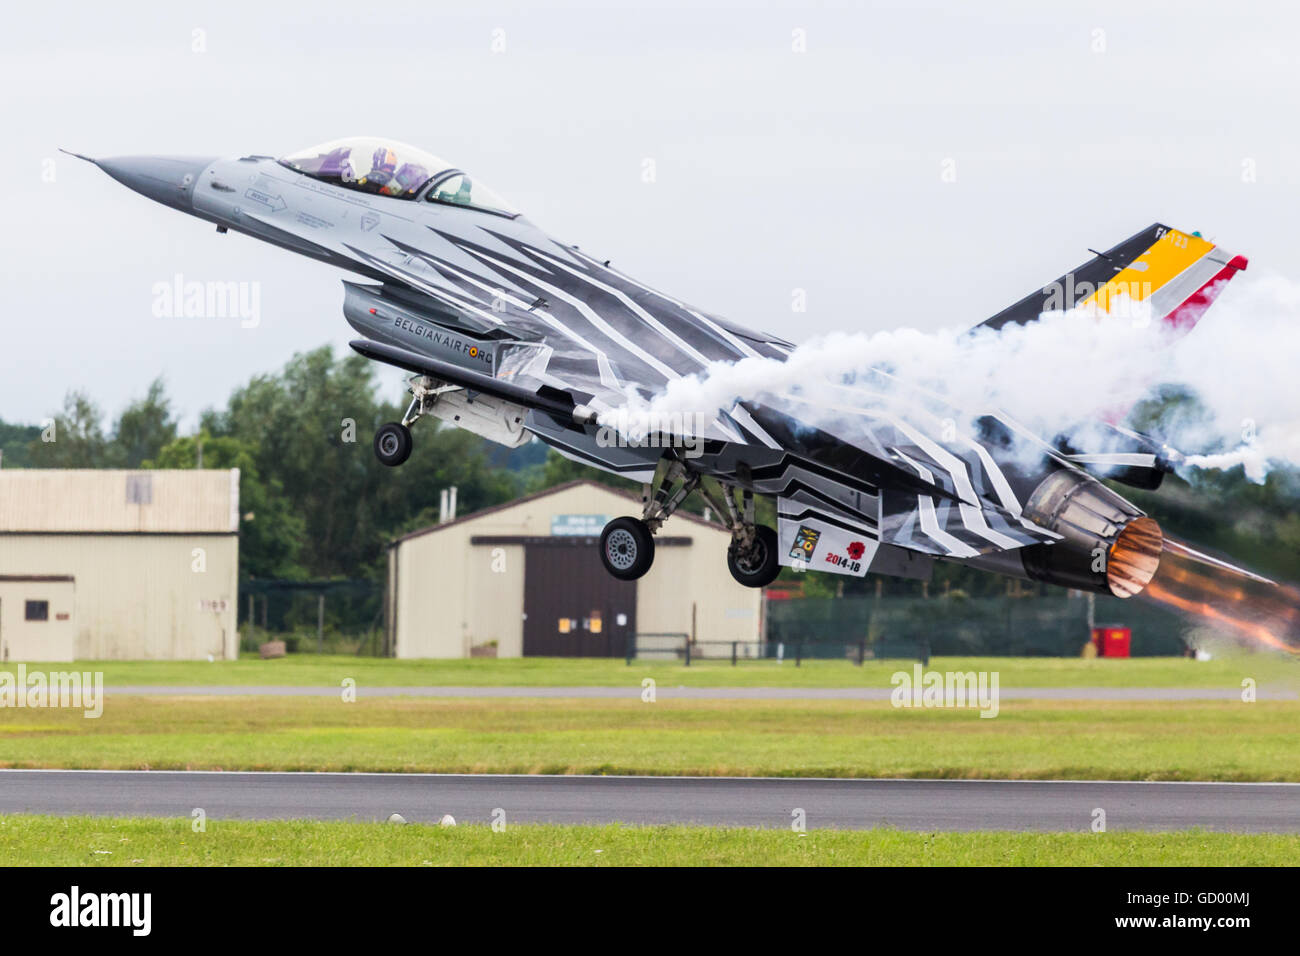 Gizmo takes to the sky in his F-16AM Fighting Falcon pictured at the 2016 Royal International Air Tattoo. Stock Photo